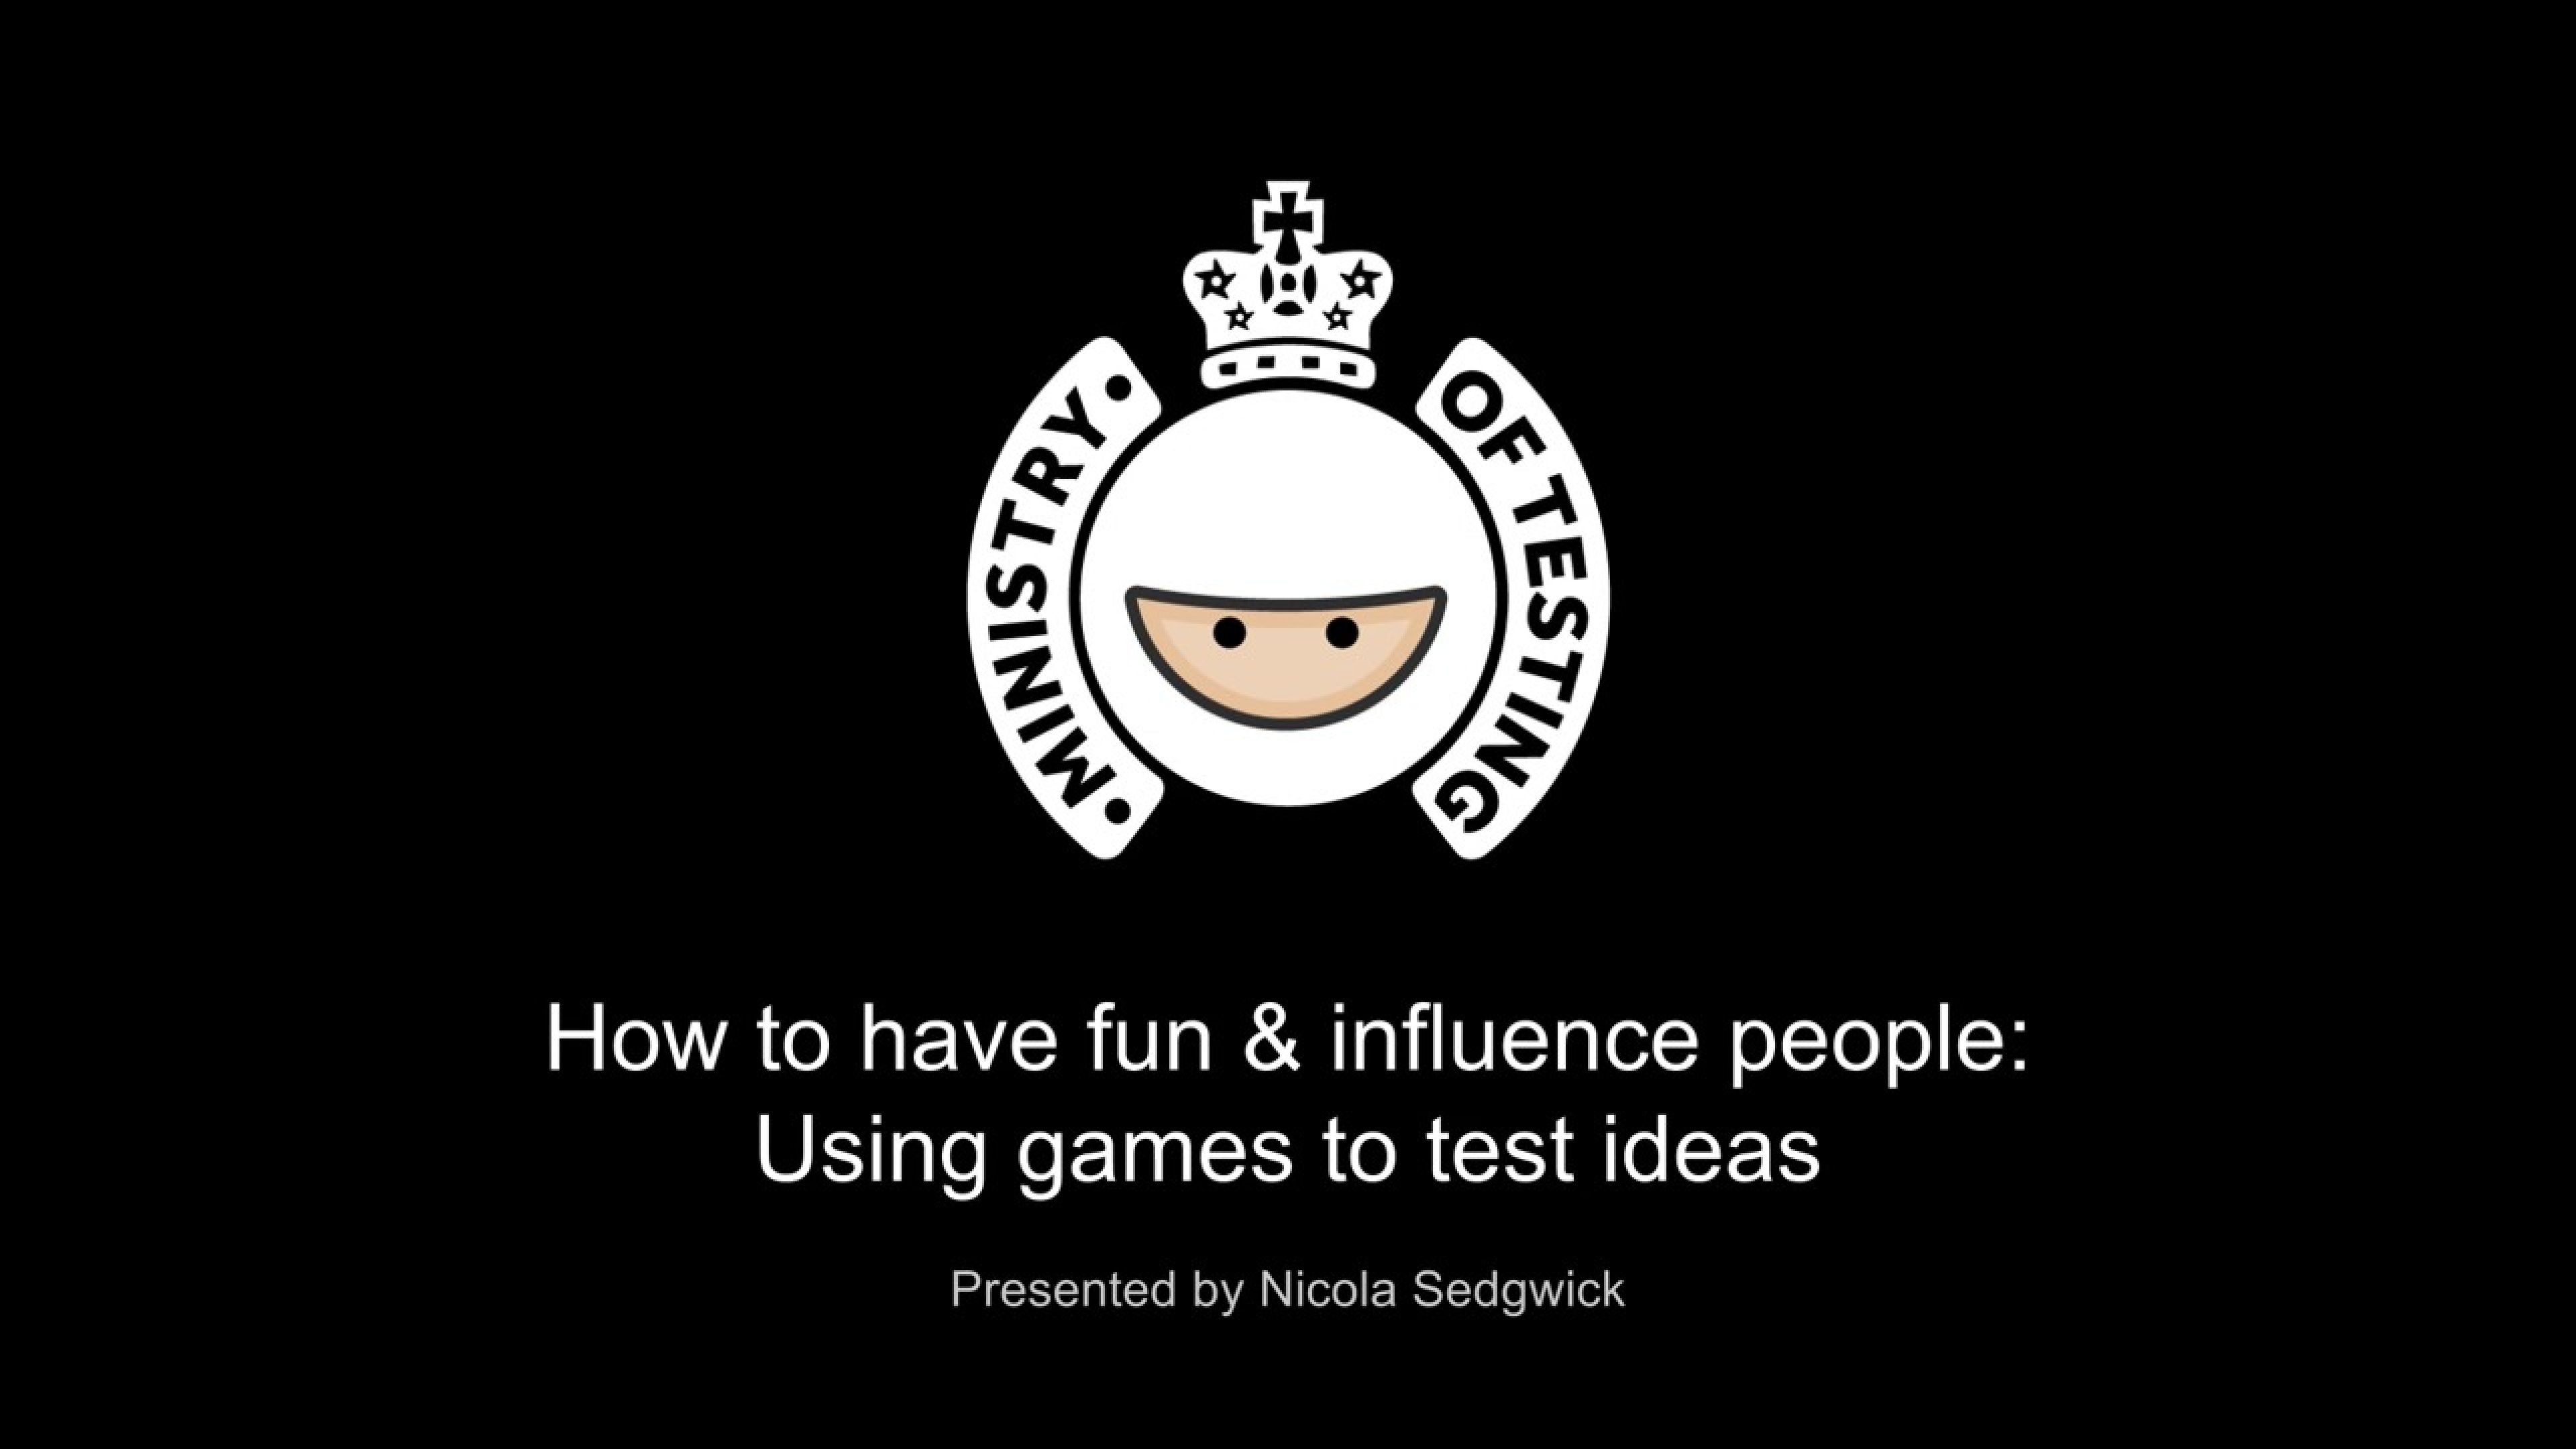 How to have fun & influence people: Using games to test ideas with Nicola Sedgwick